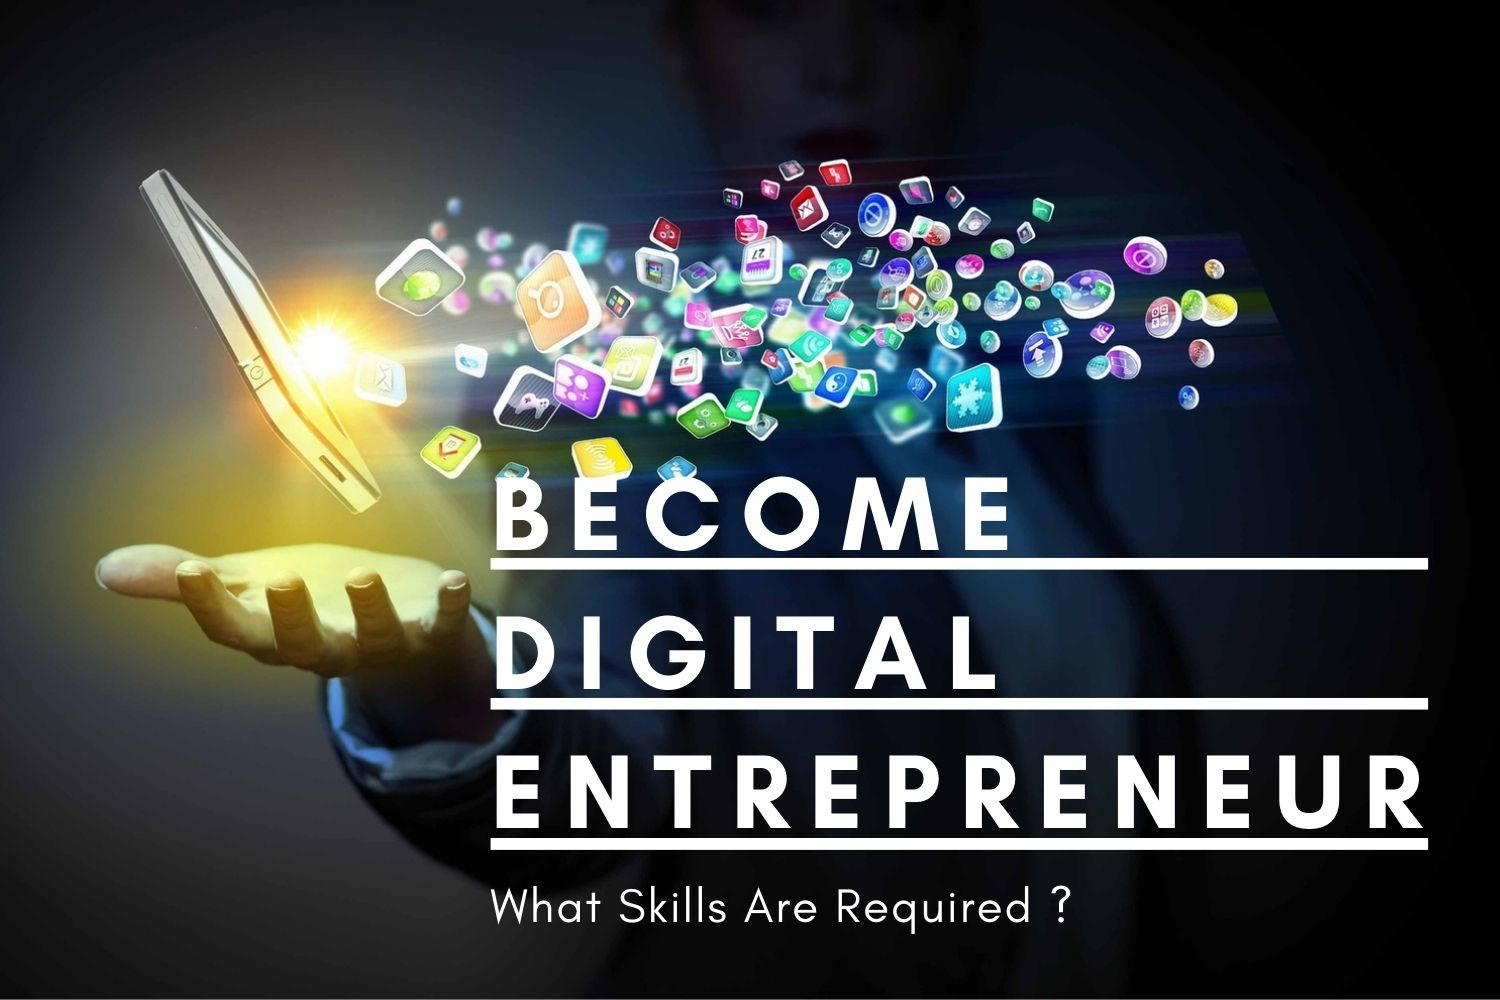 How To Become Digital Entrepreneur and What Skills Are Required